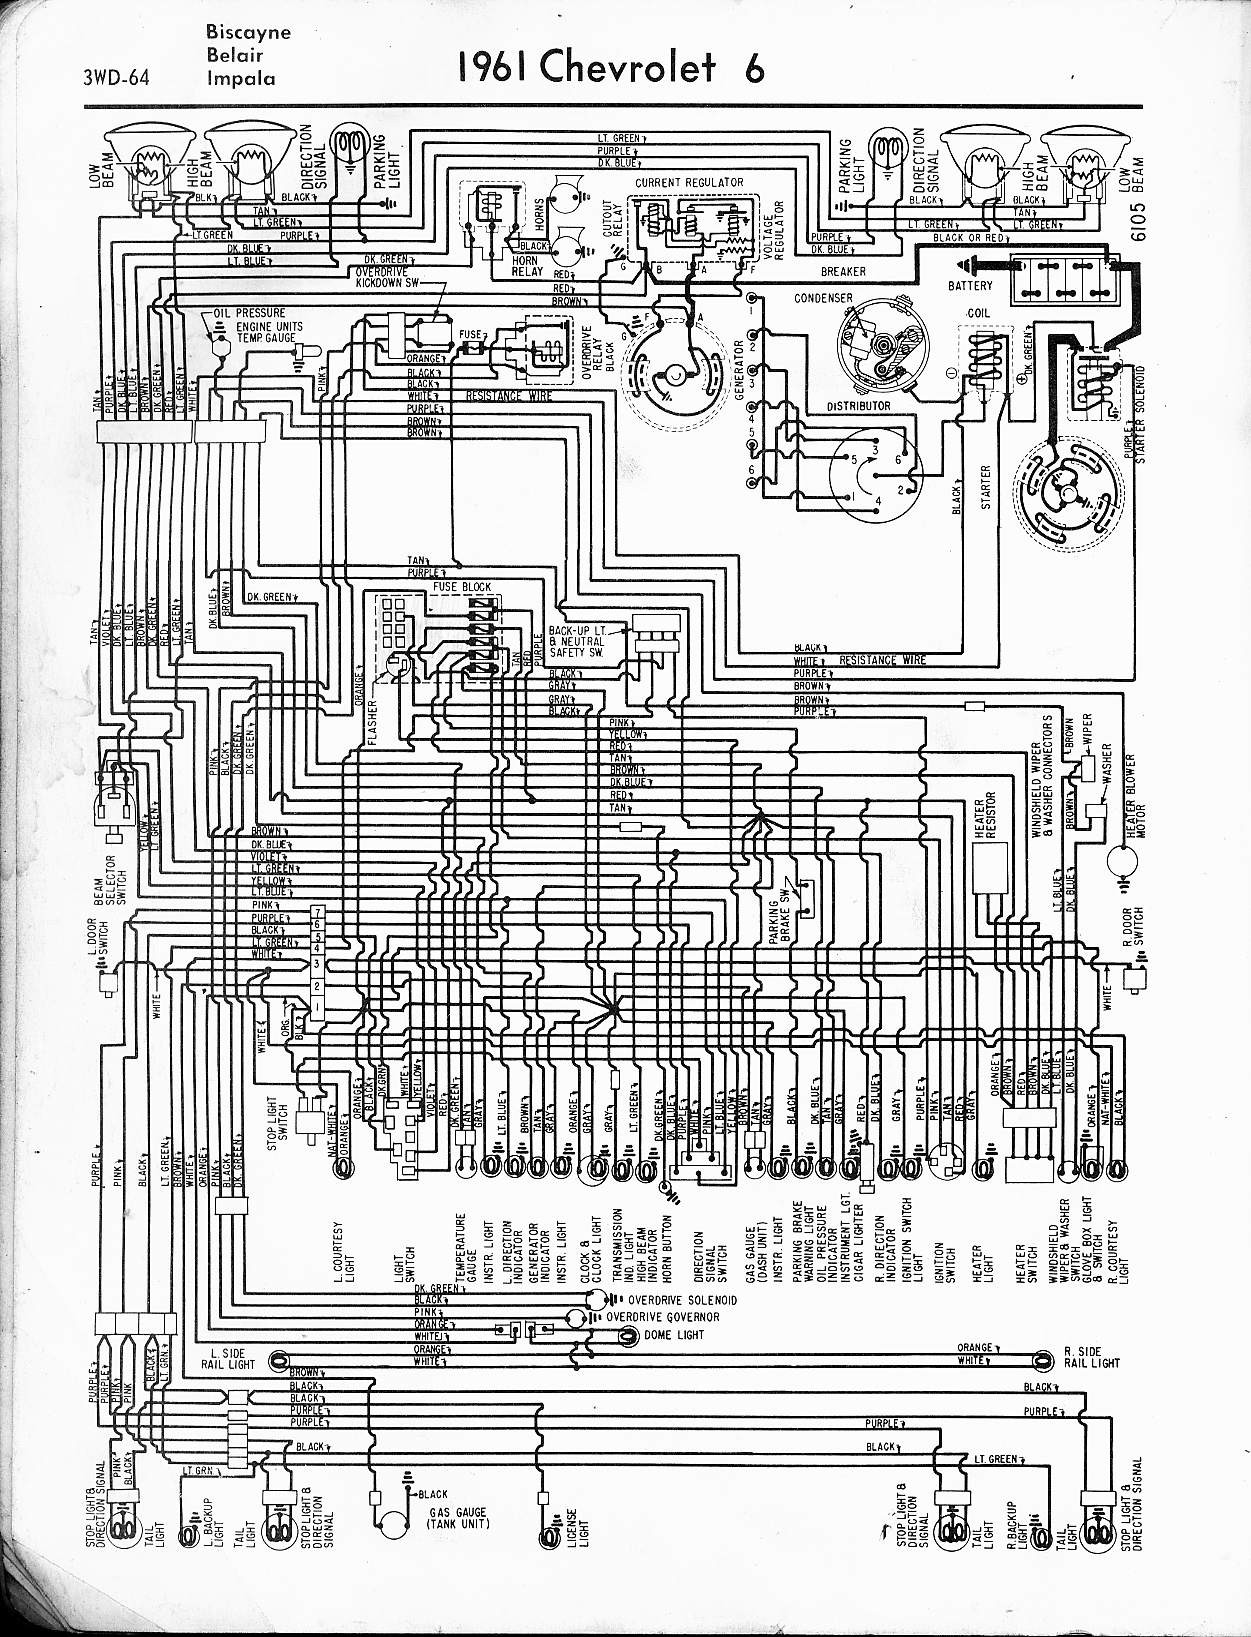 2001 Impala Ignition Switch Wiring Diagram Trusted 2005 Chevy Starter Automotive Block U2022 1964